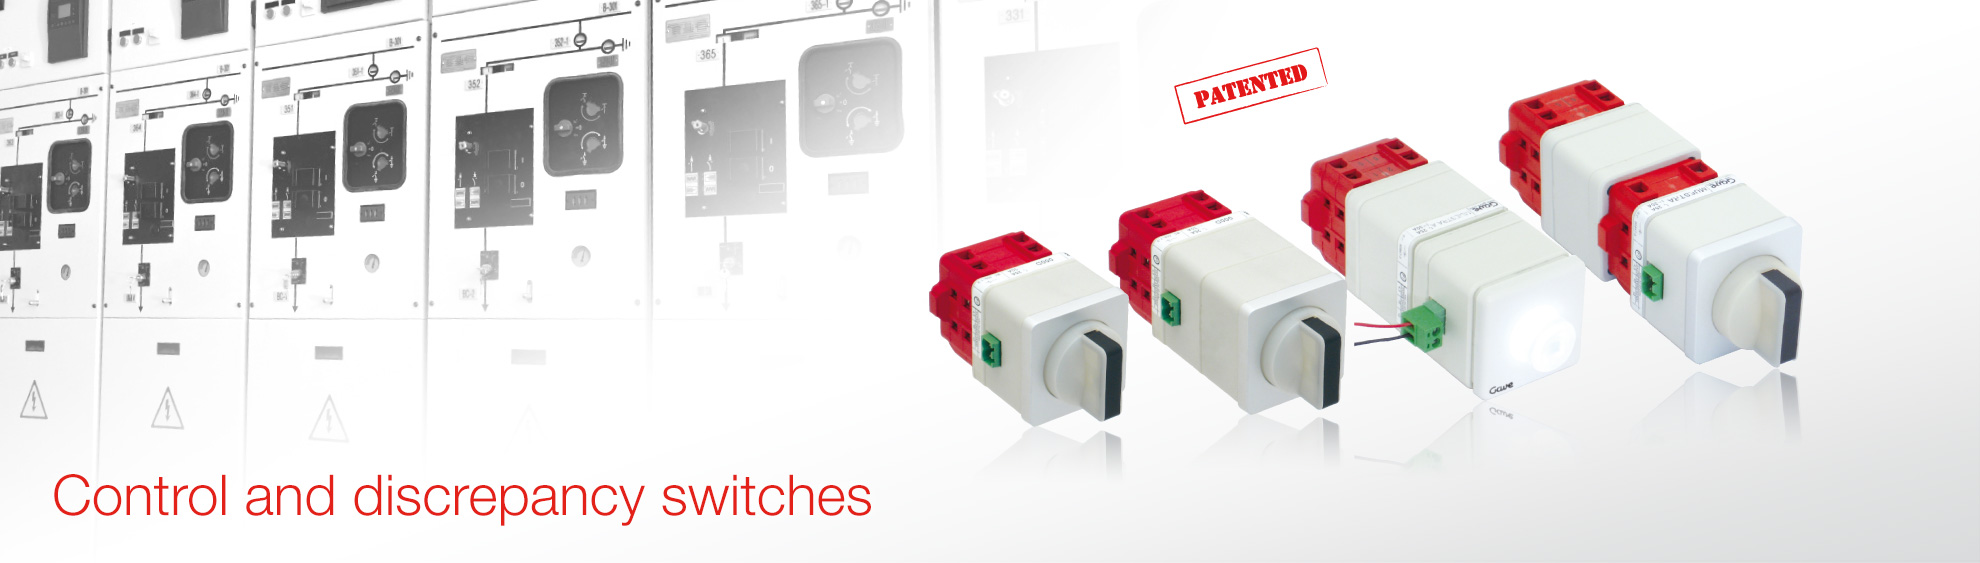 Discrepancy switches